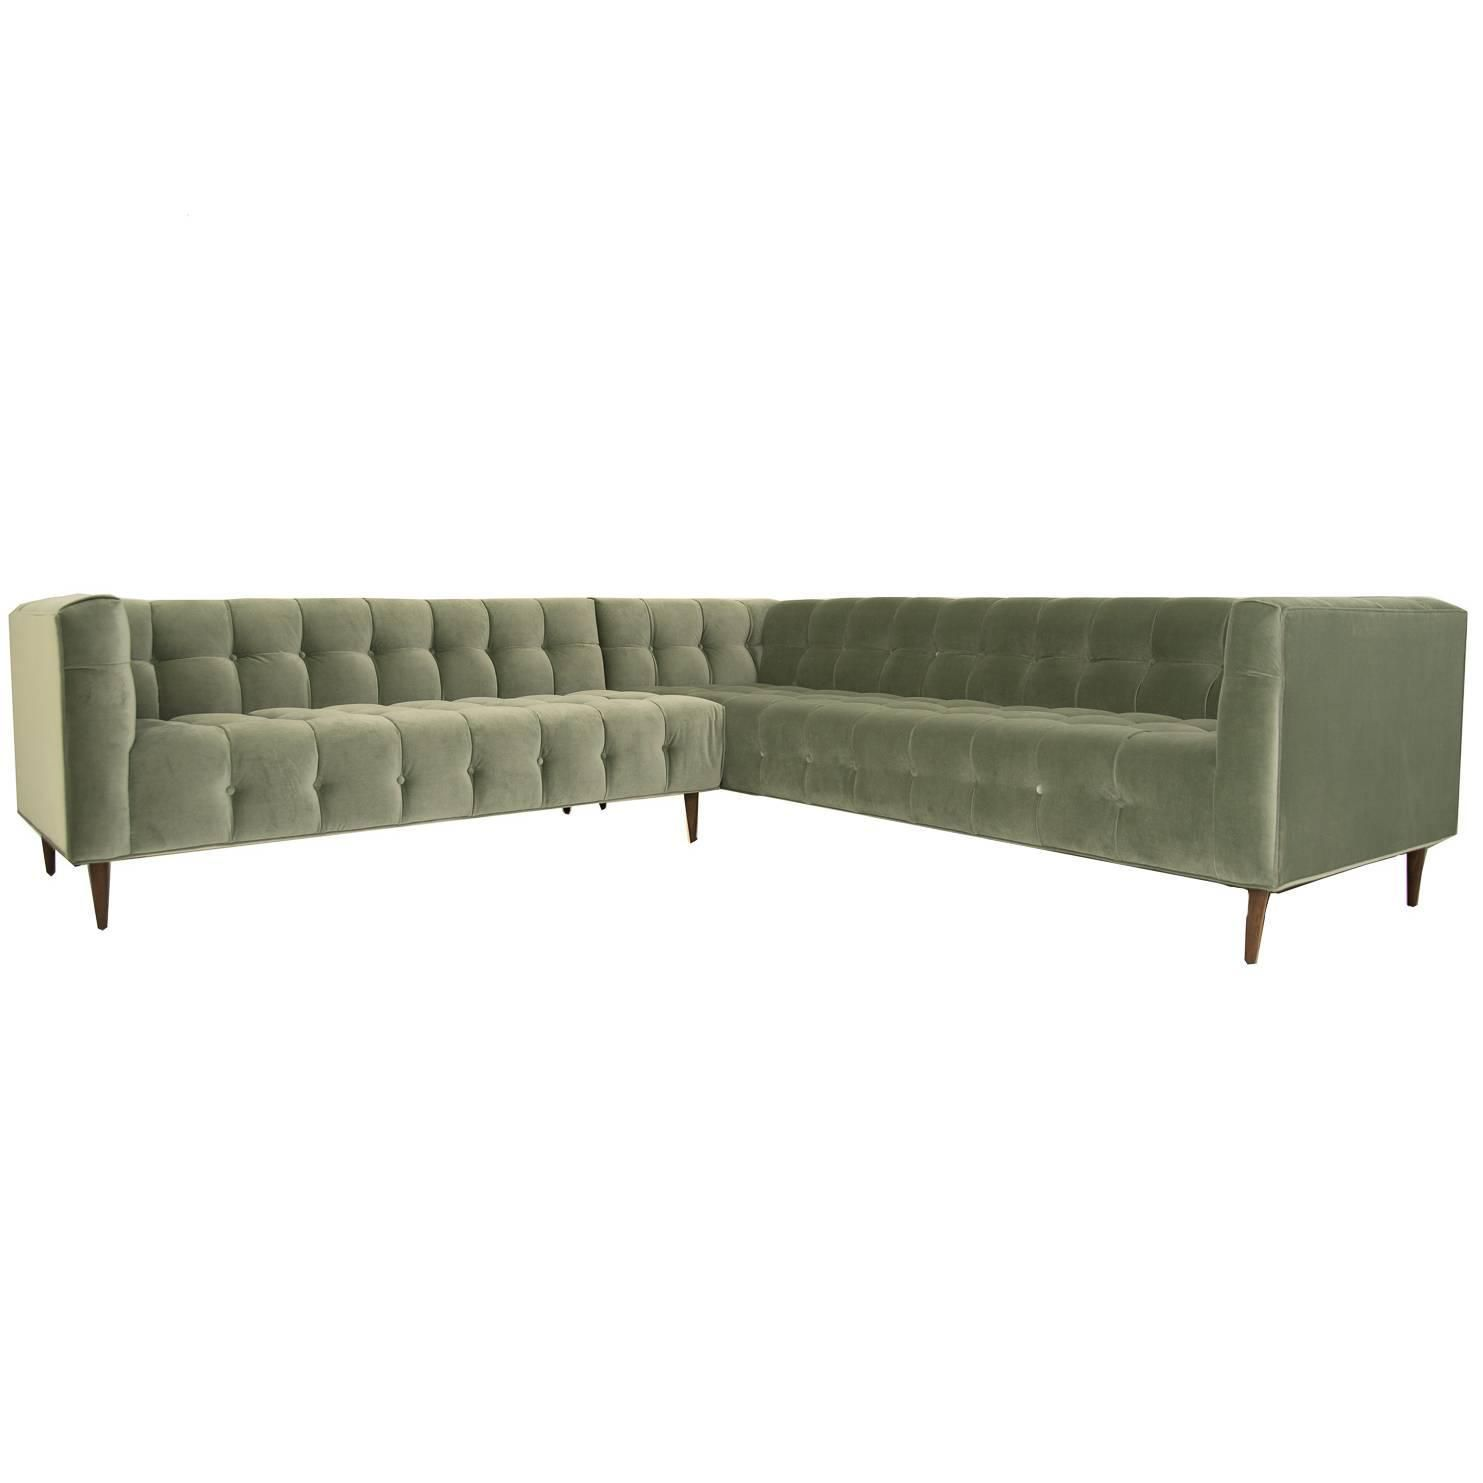 Tufted sectional in sage velvet from a unique collection of antique and modern sectional sofas